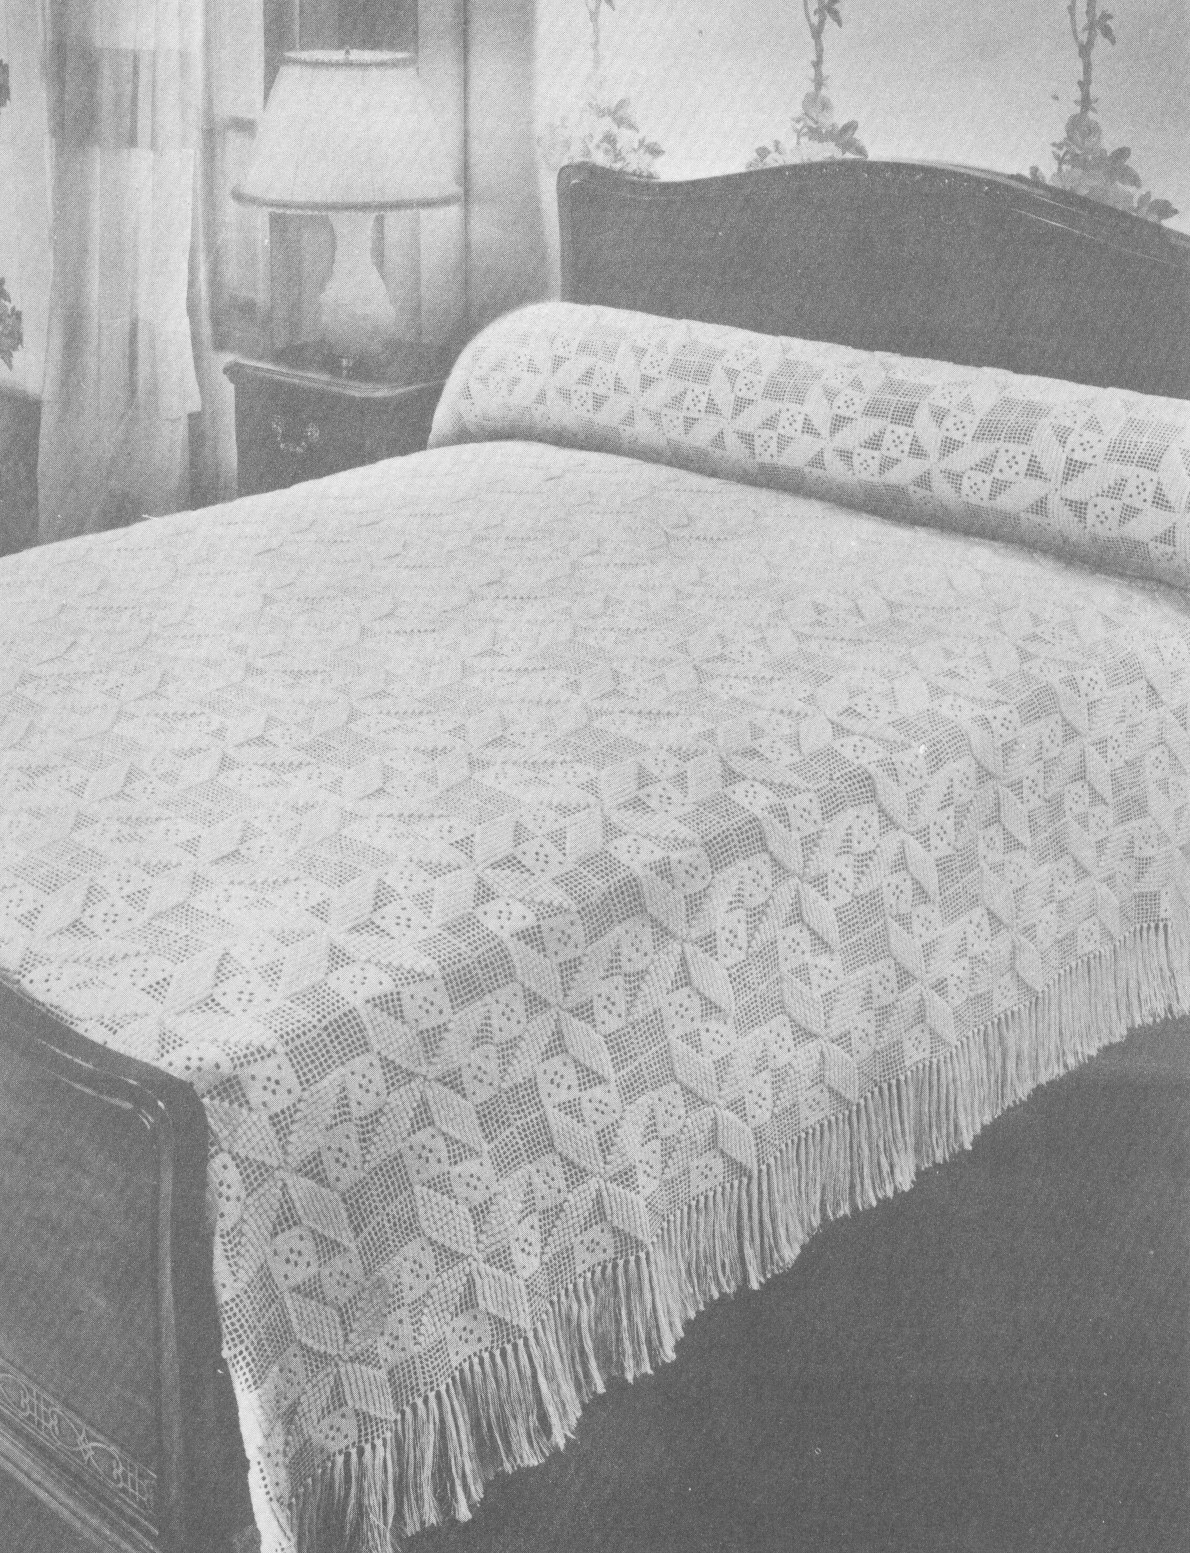 Crochet Bedspread Best Of Free Crochet Pattern Bedspread Popcorn Crochet and Of Unique 38 Pics Crochet Bedspread